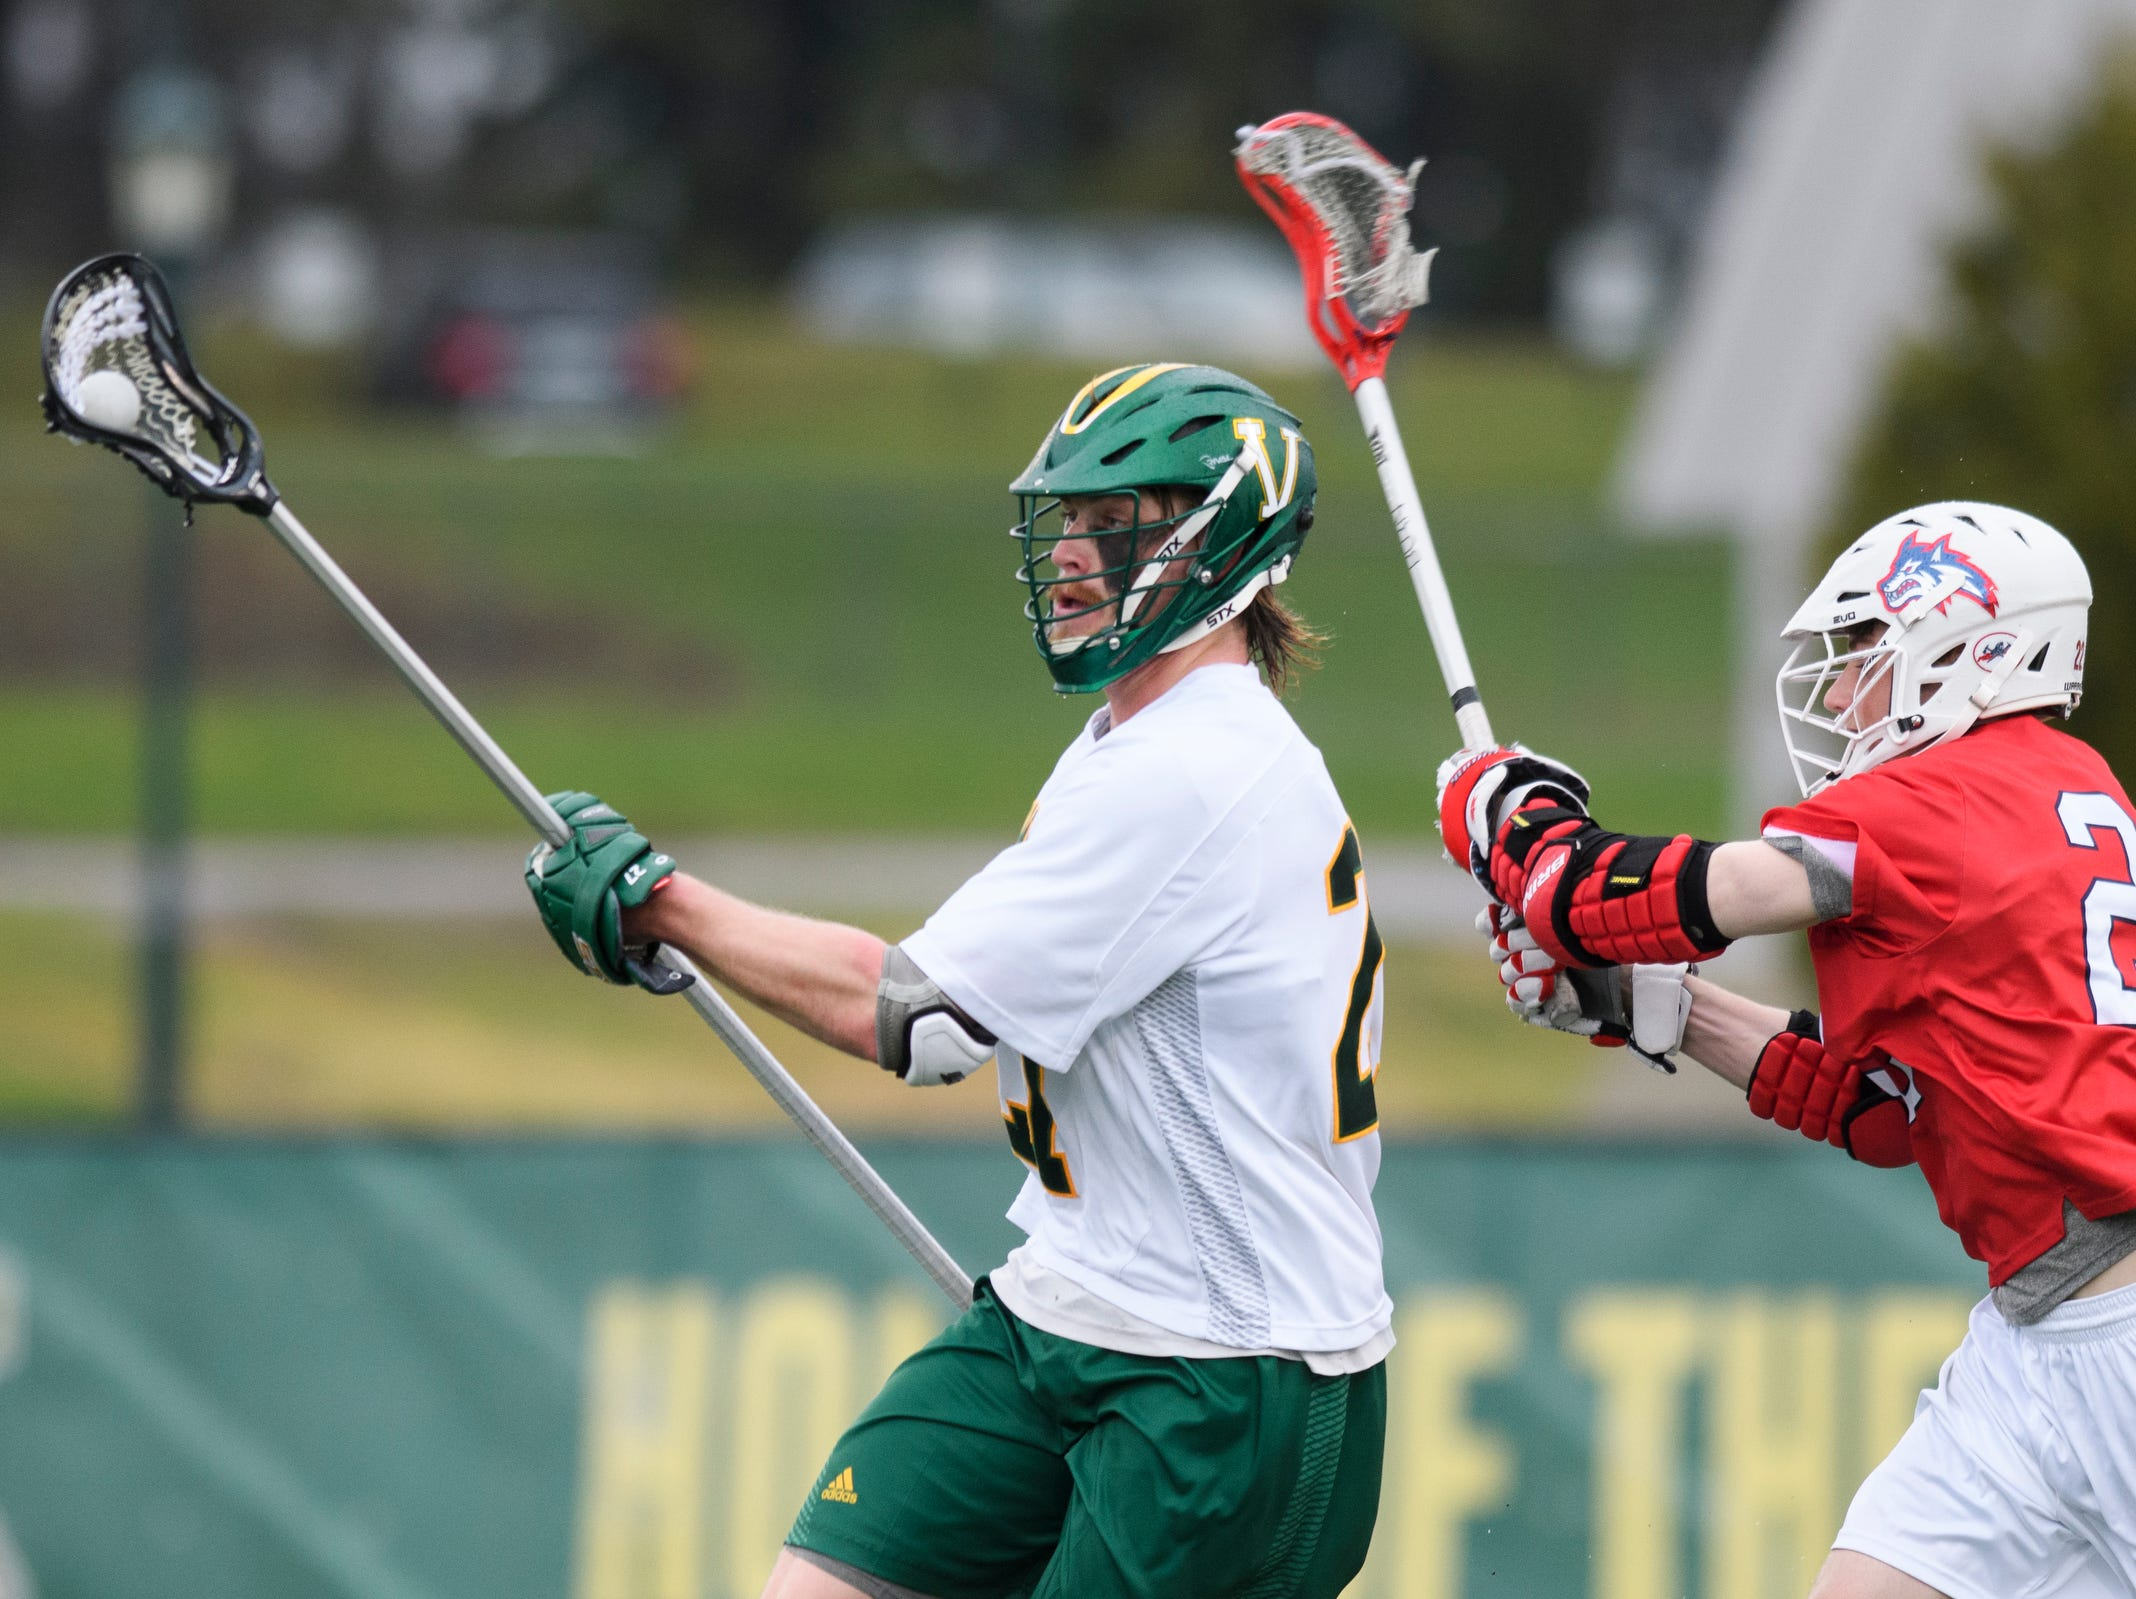 Vermont's Warren Jeffrey (27) runs past Stony Brook's Tom Haun (22) with the ball during the men's lacrosse game between the Stony Brook Sea Wolves and the Vermont Catamounts at Virtue Field on Saturday afternoon April 20, 2019 in Burlington, Vermont.